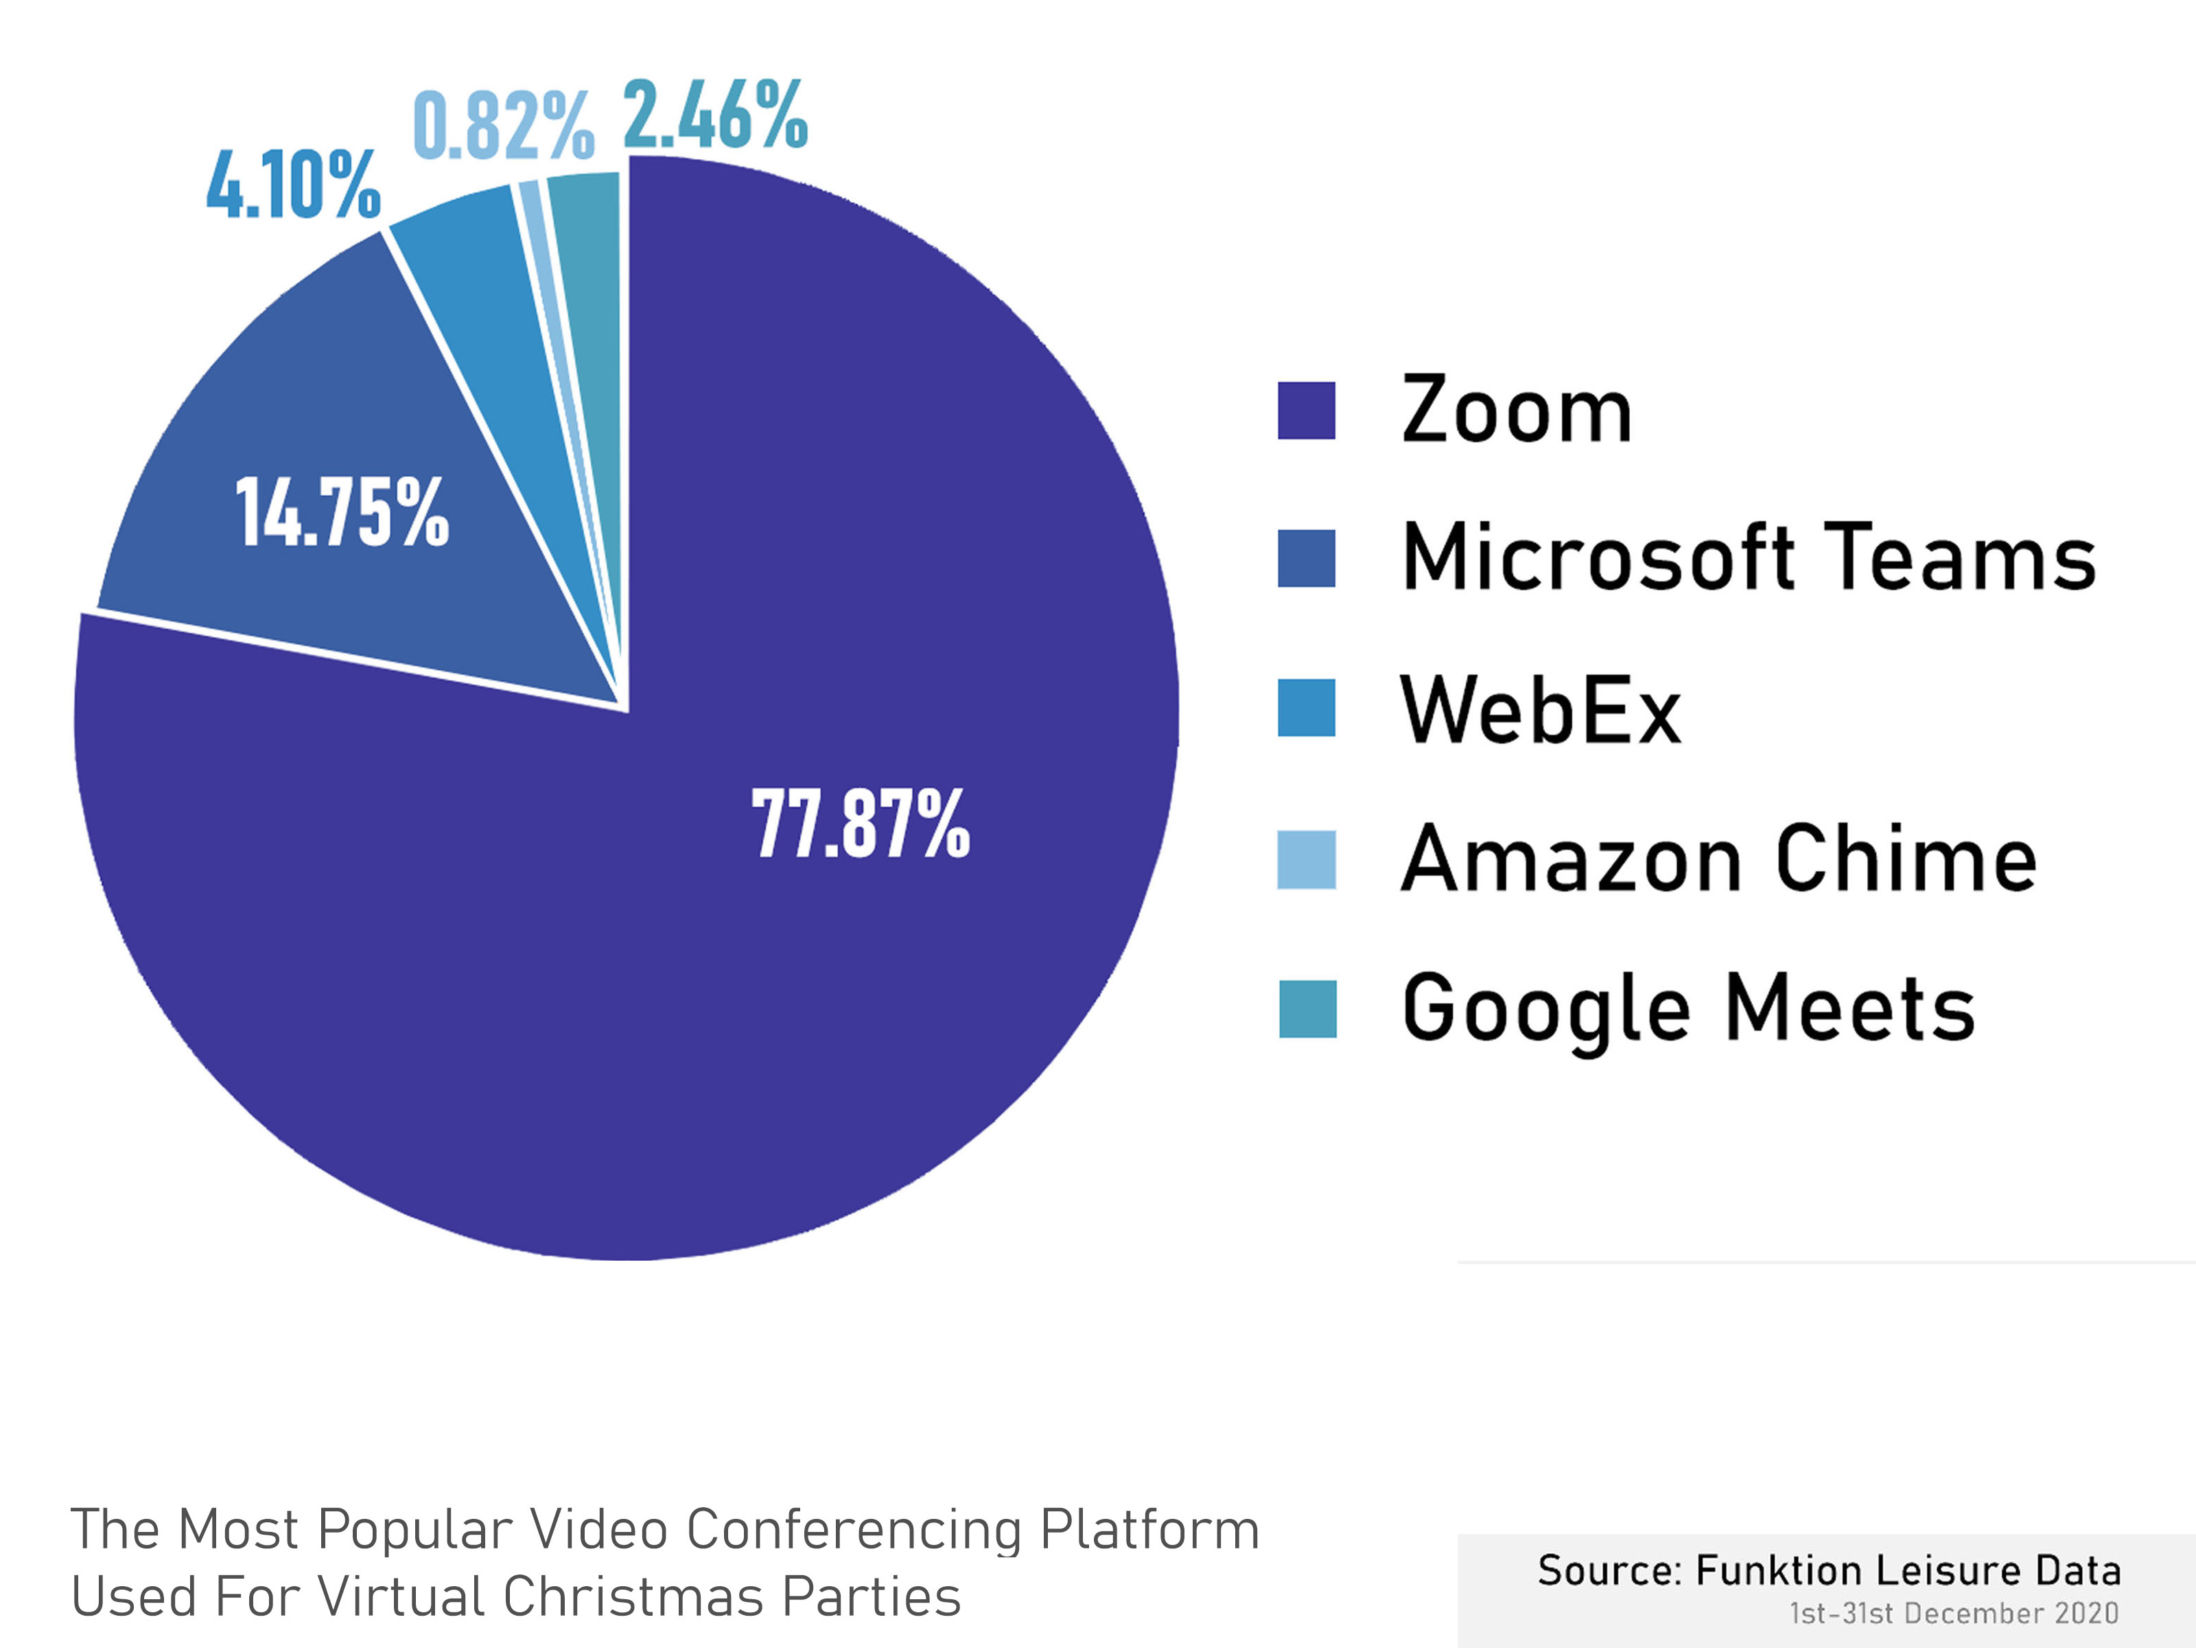 Most Popular Video Conferencing Platform for Virtual Christmas Parties